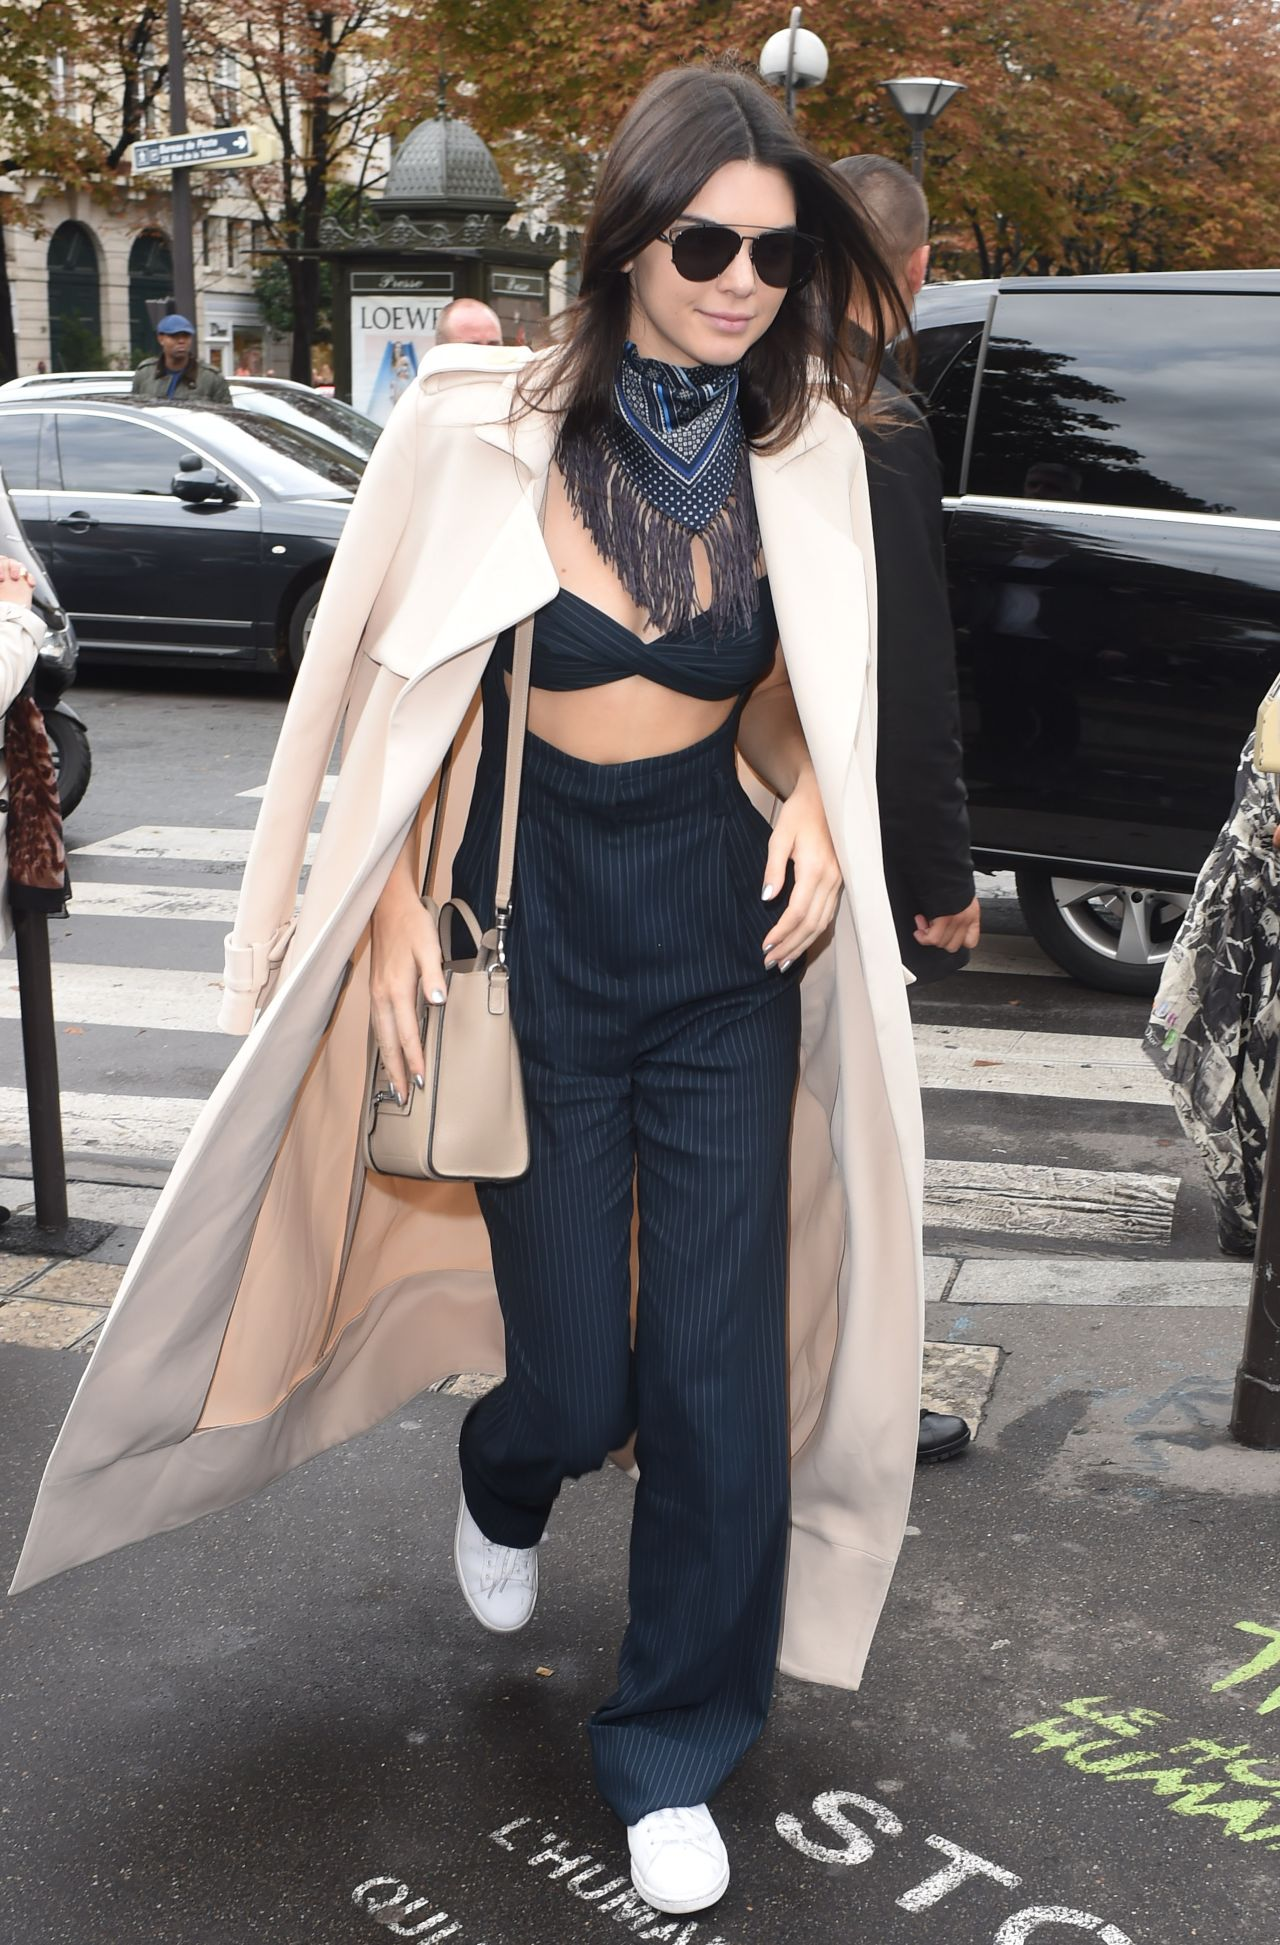 kendall-jenner-arriving-at-l-avenue-restaurant-in-paris-october-2015_1